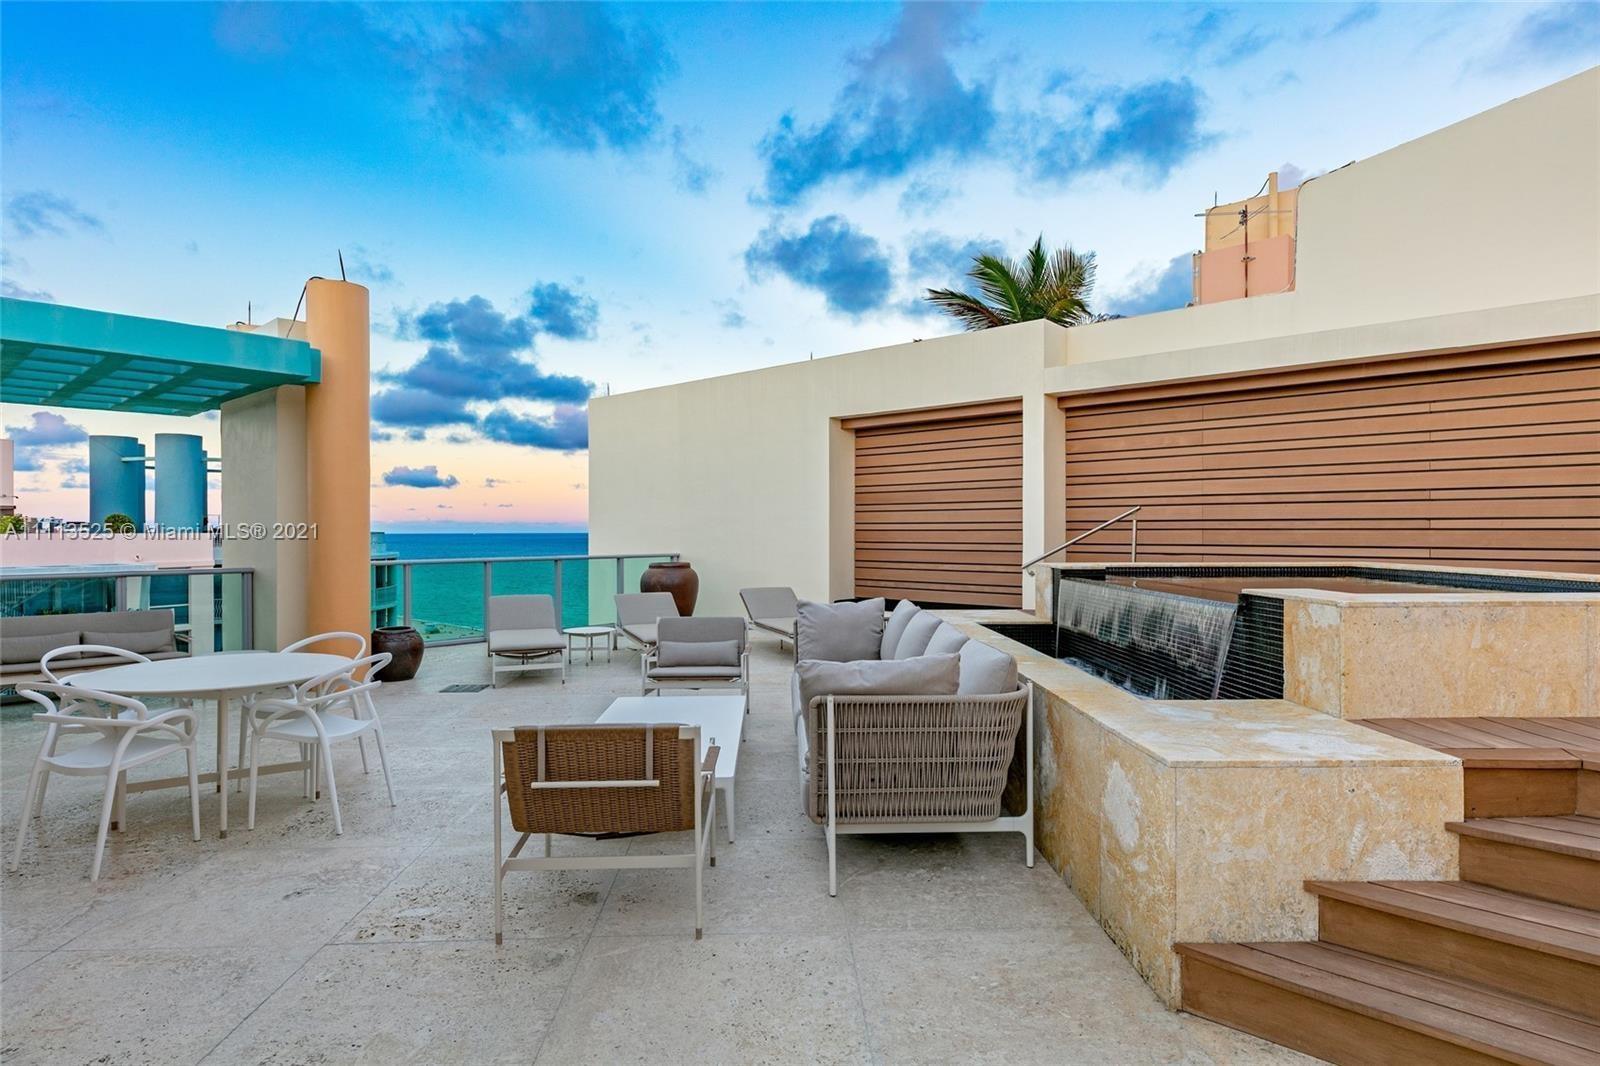 Stunning Penthouse on Iconic Ocean Drive in the Historic Art Deco District of South Beach! This 2,21